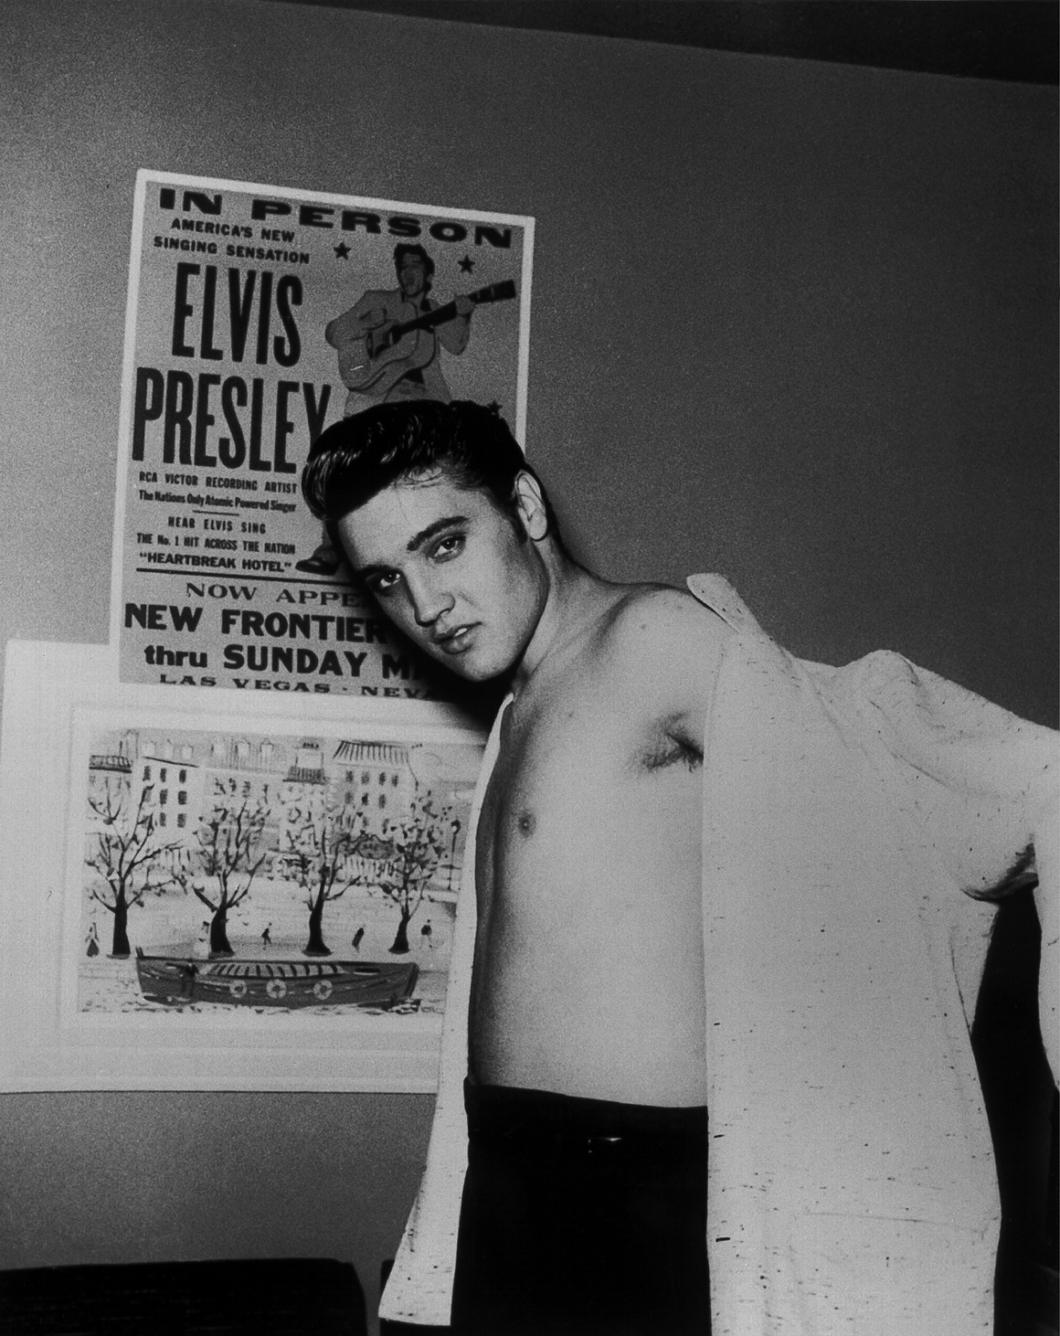 Elvis posing in front of one of his posters